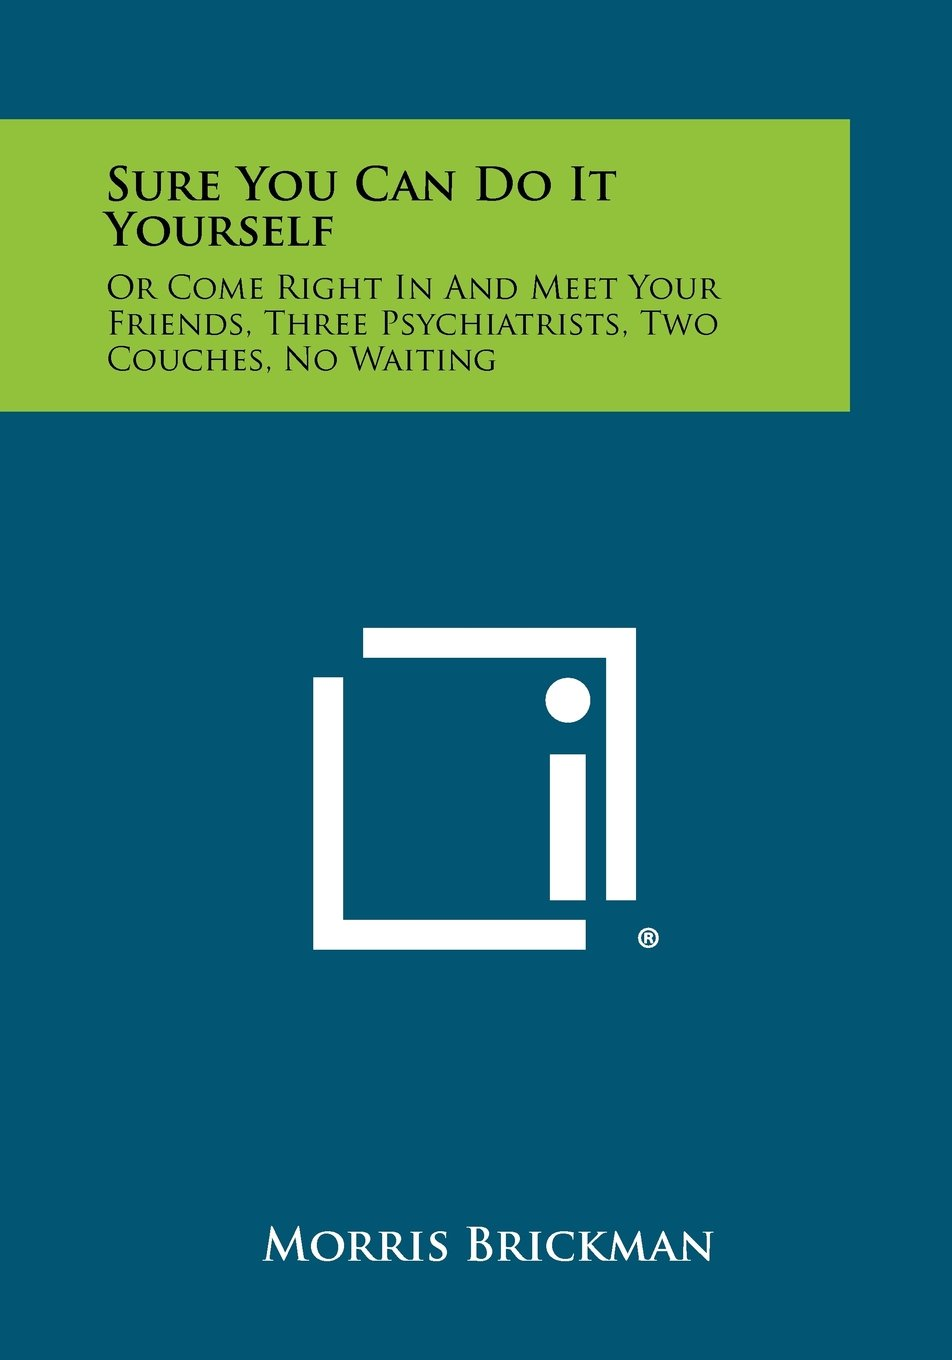 Download Sure You Can Do It Yourself: Or Come Right In And Meet Your Friends, Three Psychiatrists, Two Couches, No Waiting pdf epub